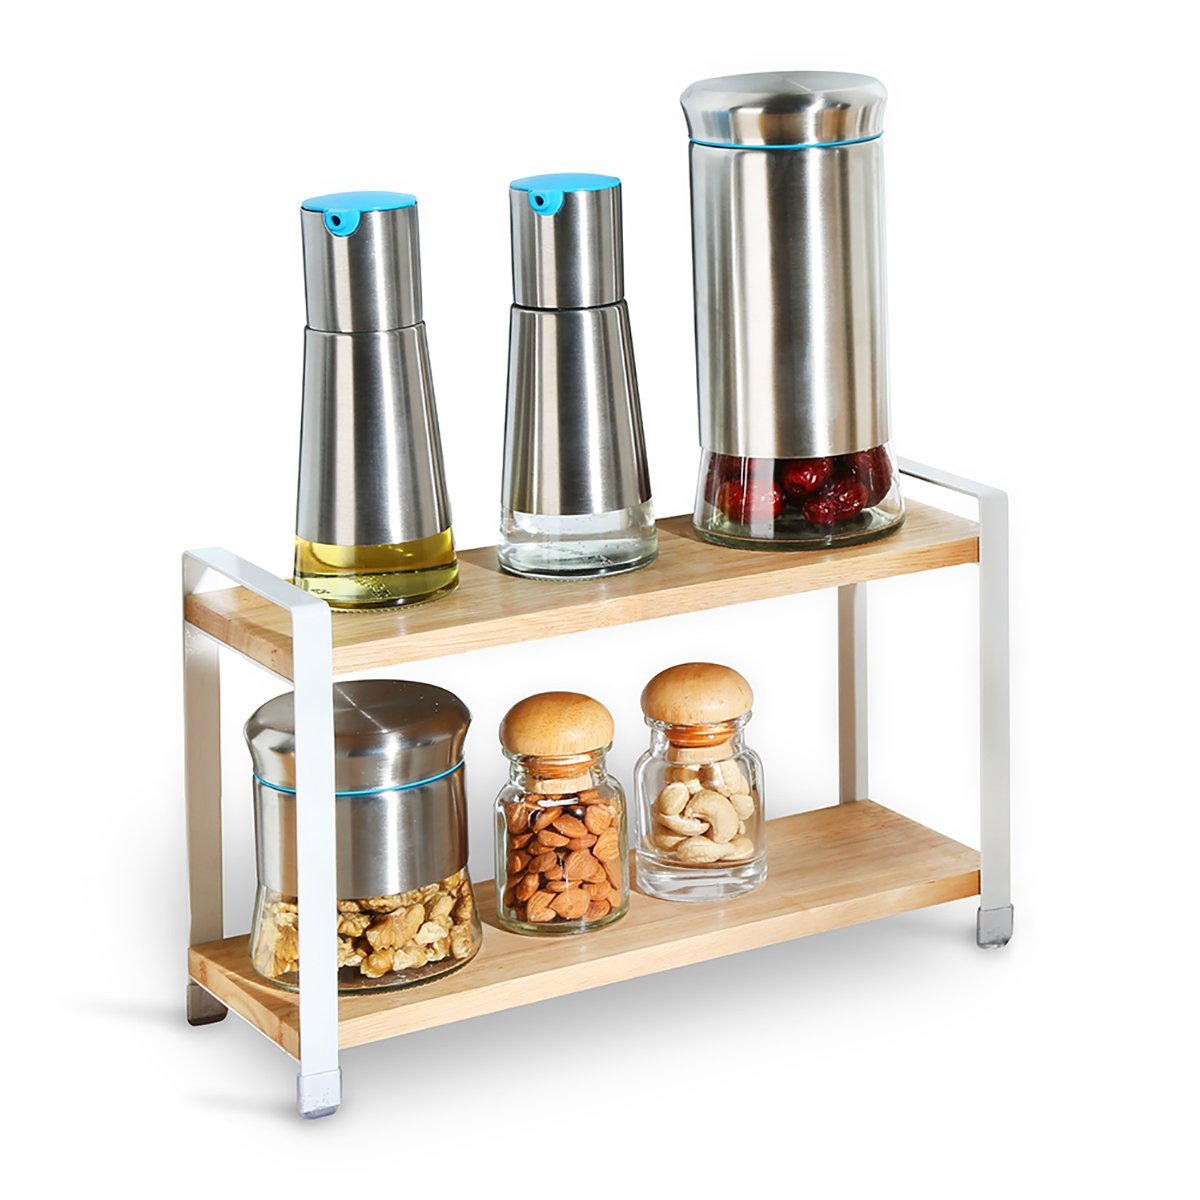 Creatwo Wood Spice Rack, 2 Tier Kitchen Countertop Spice Rack